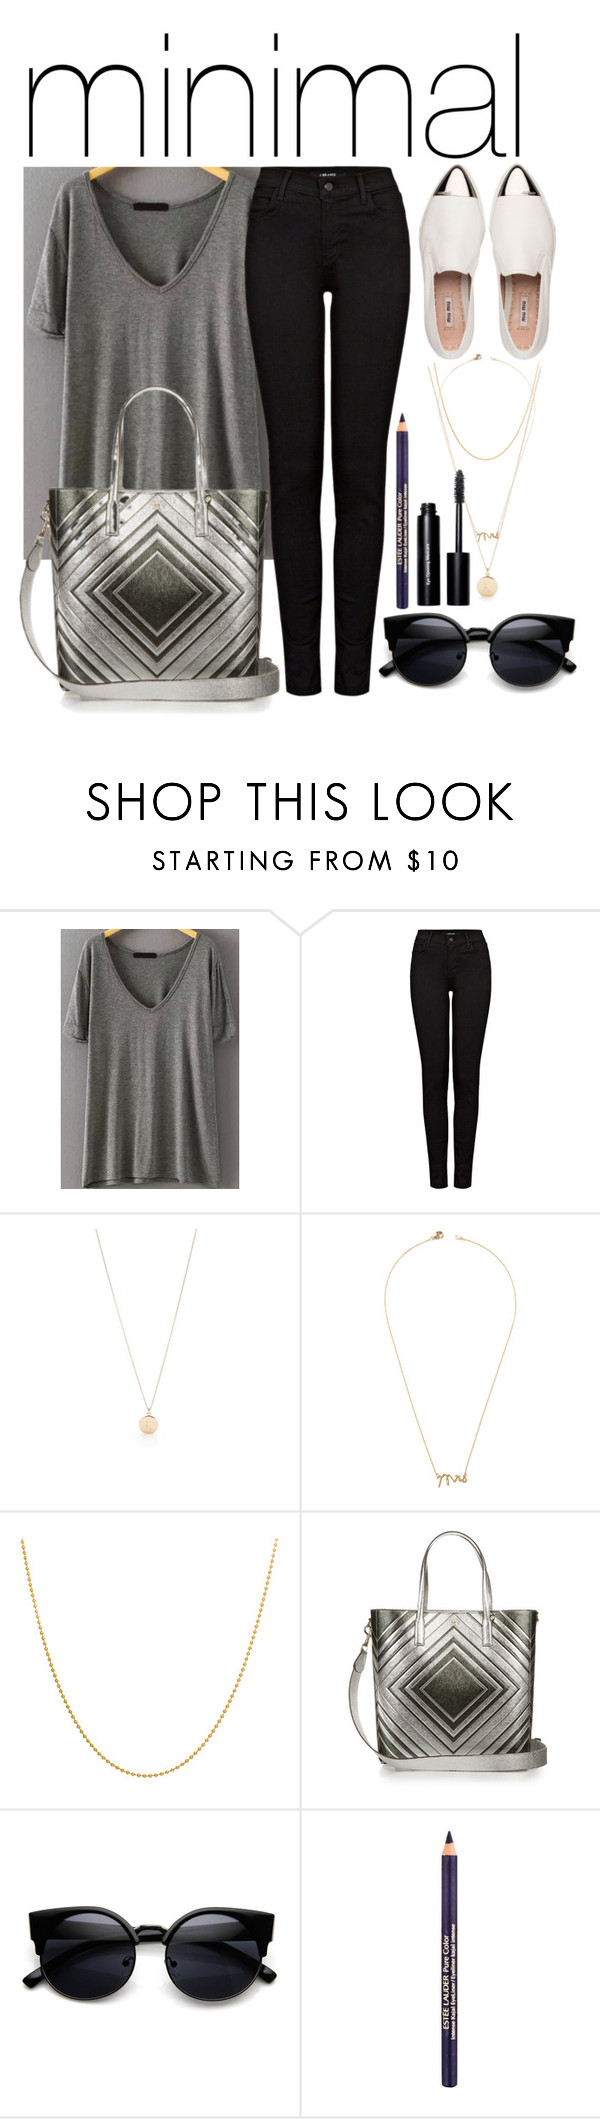 """minimalism"" by romi-kella on Polyvore featuring J Brand, Kate Spade, Miu Miu, Jeweliq, Sterling Essentials, Anya Hindmarch, Estée Lauder and Bobbi Brown Cosmetics"